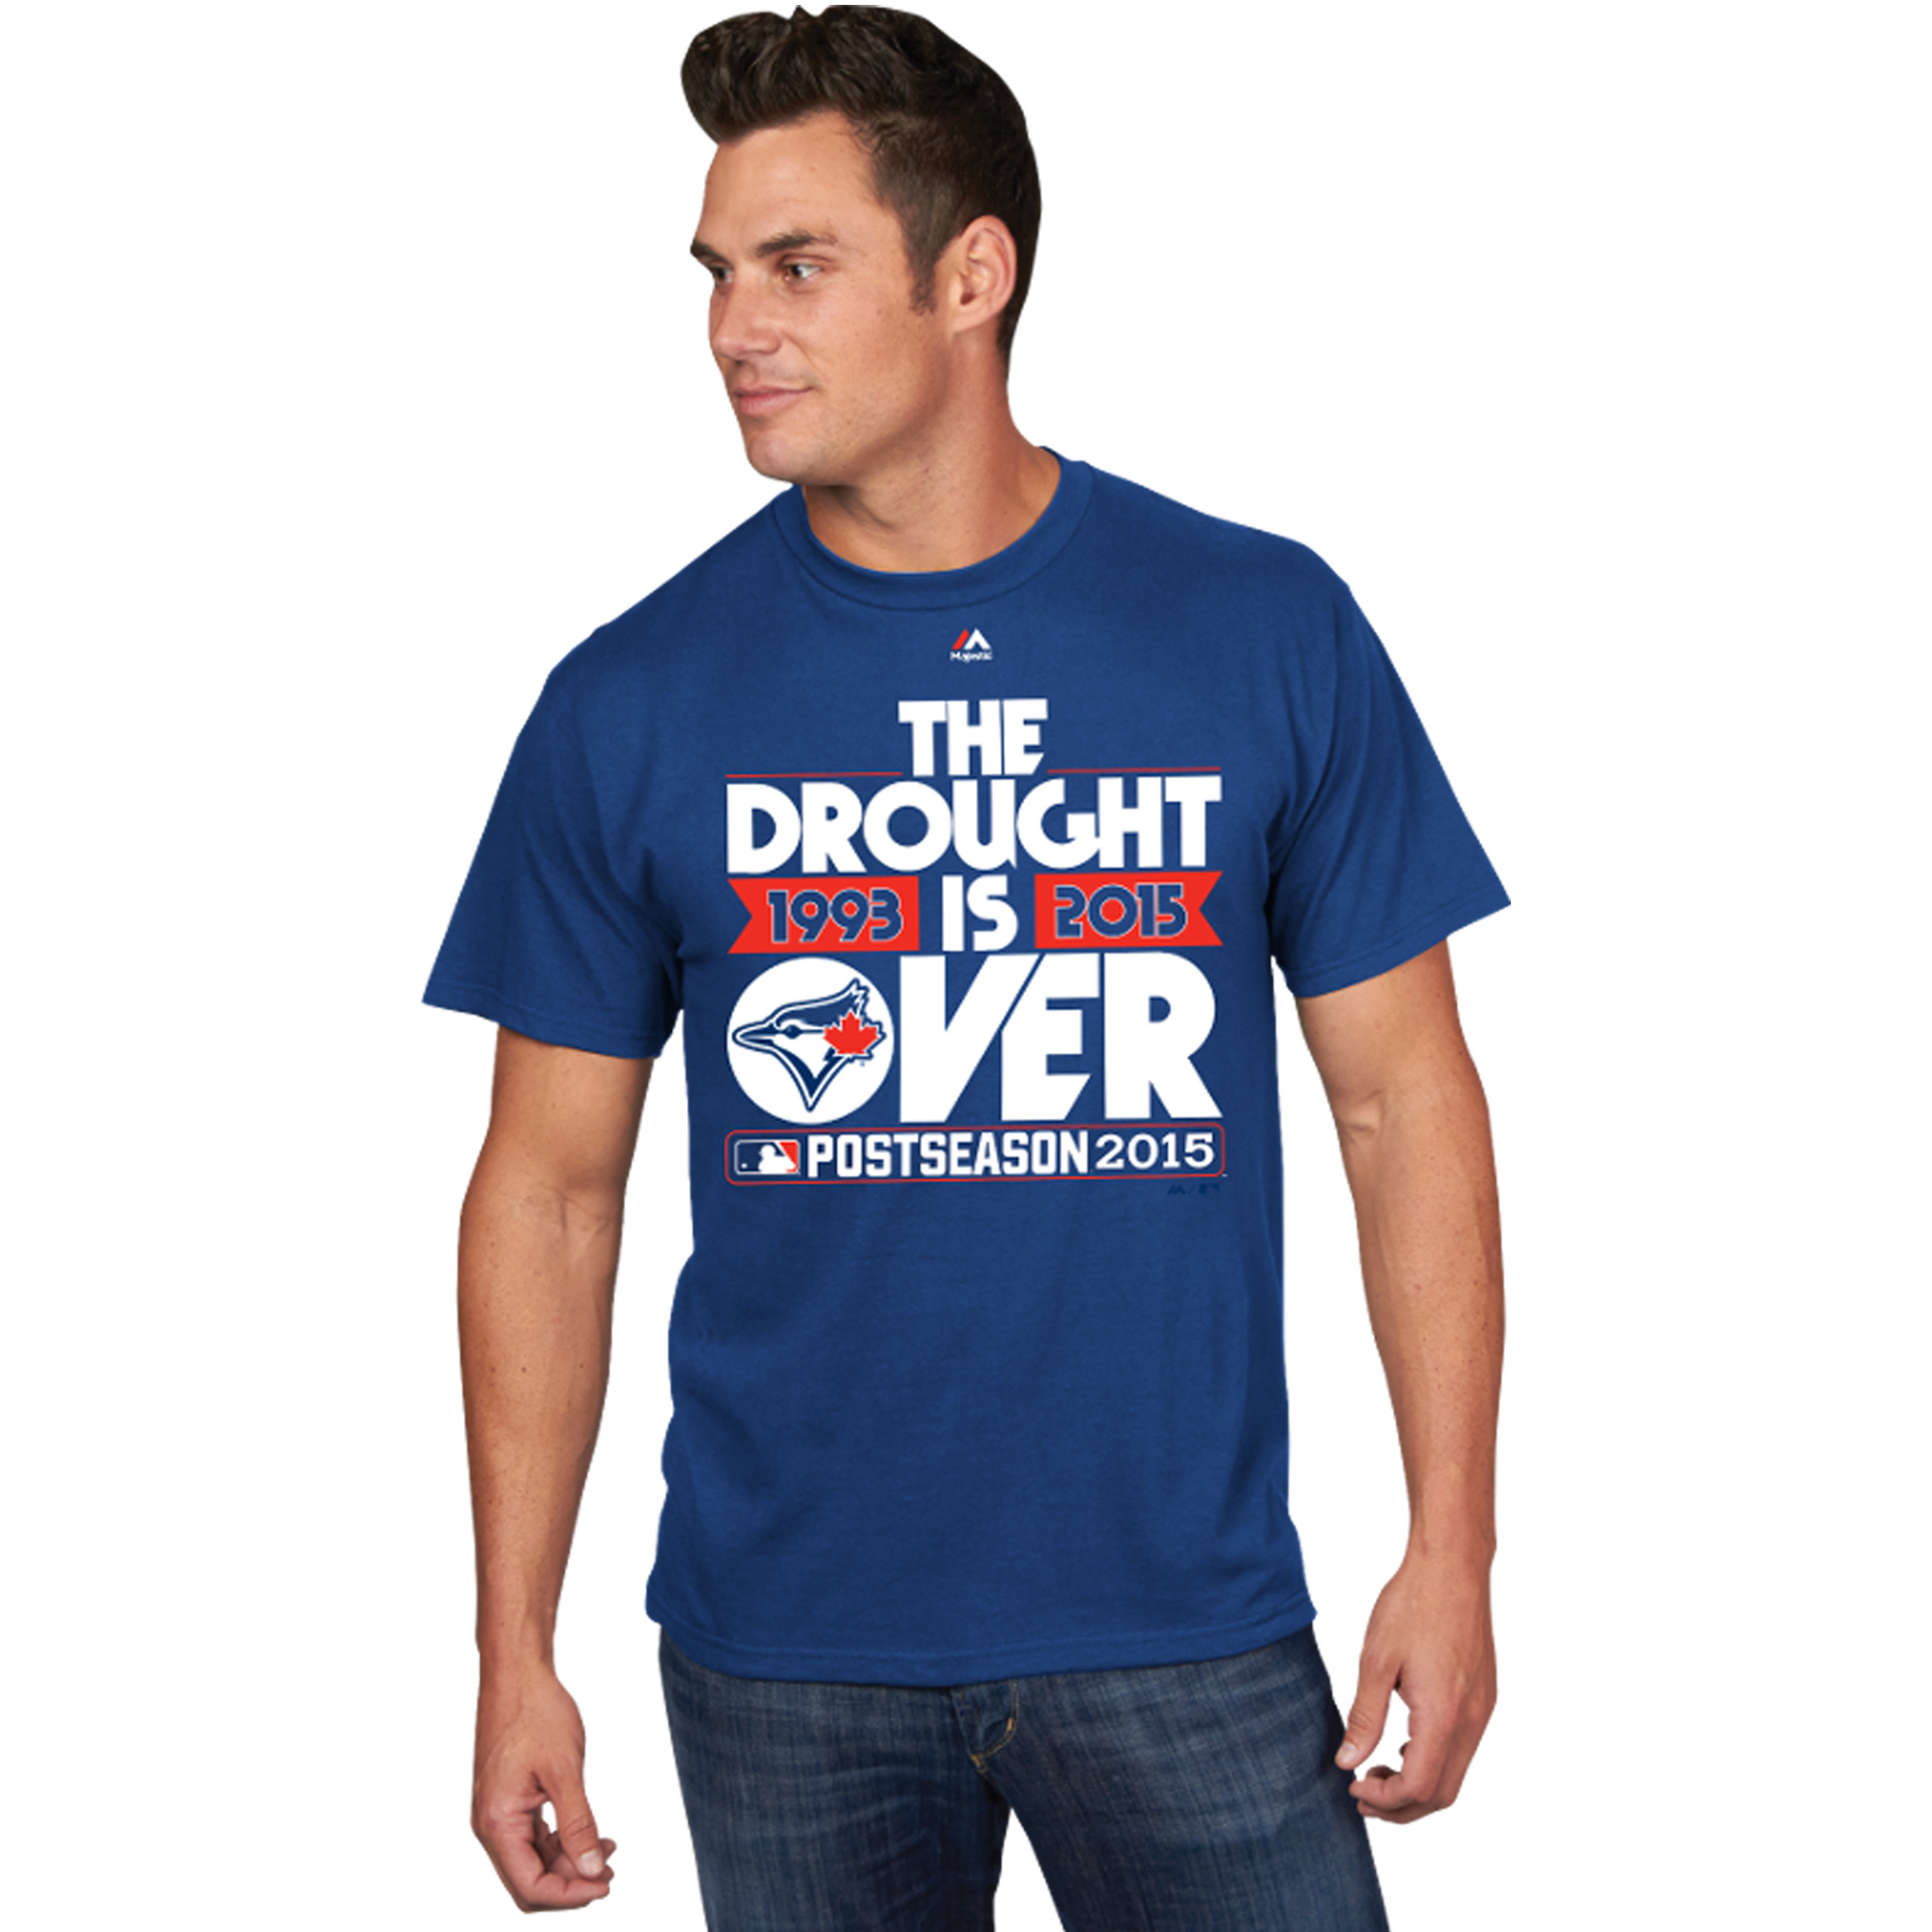 Toronto Blue Jays Majestic 2015 Postseason Drought Is Over T-Shirt - Royal